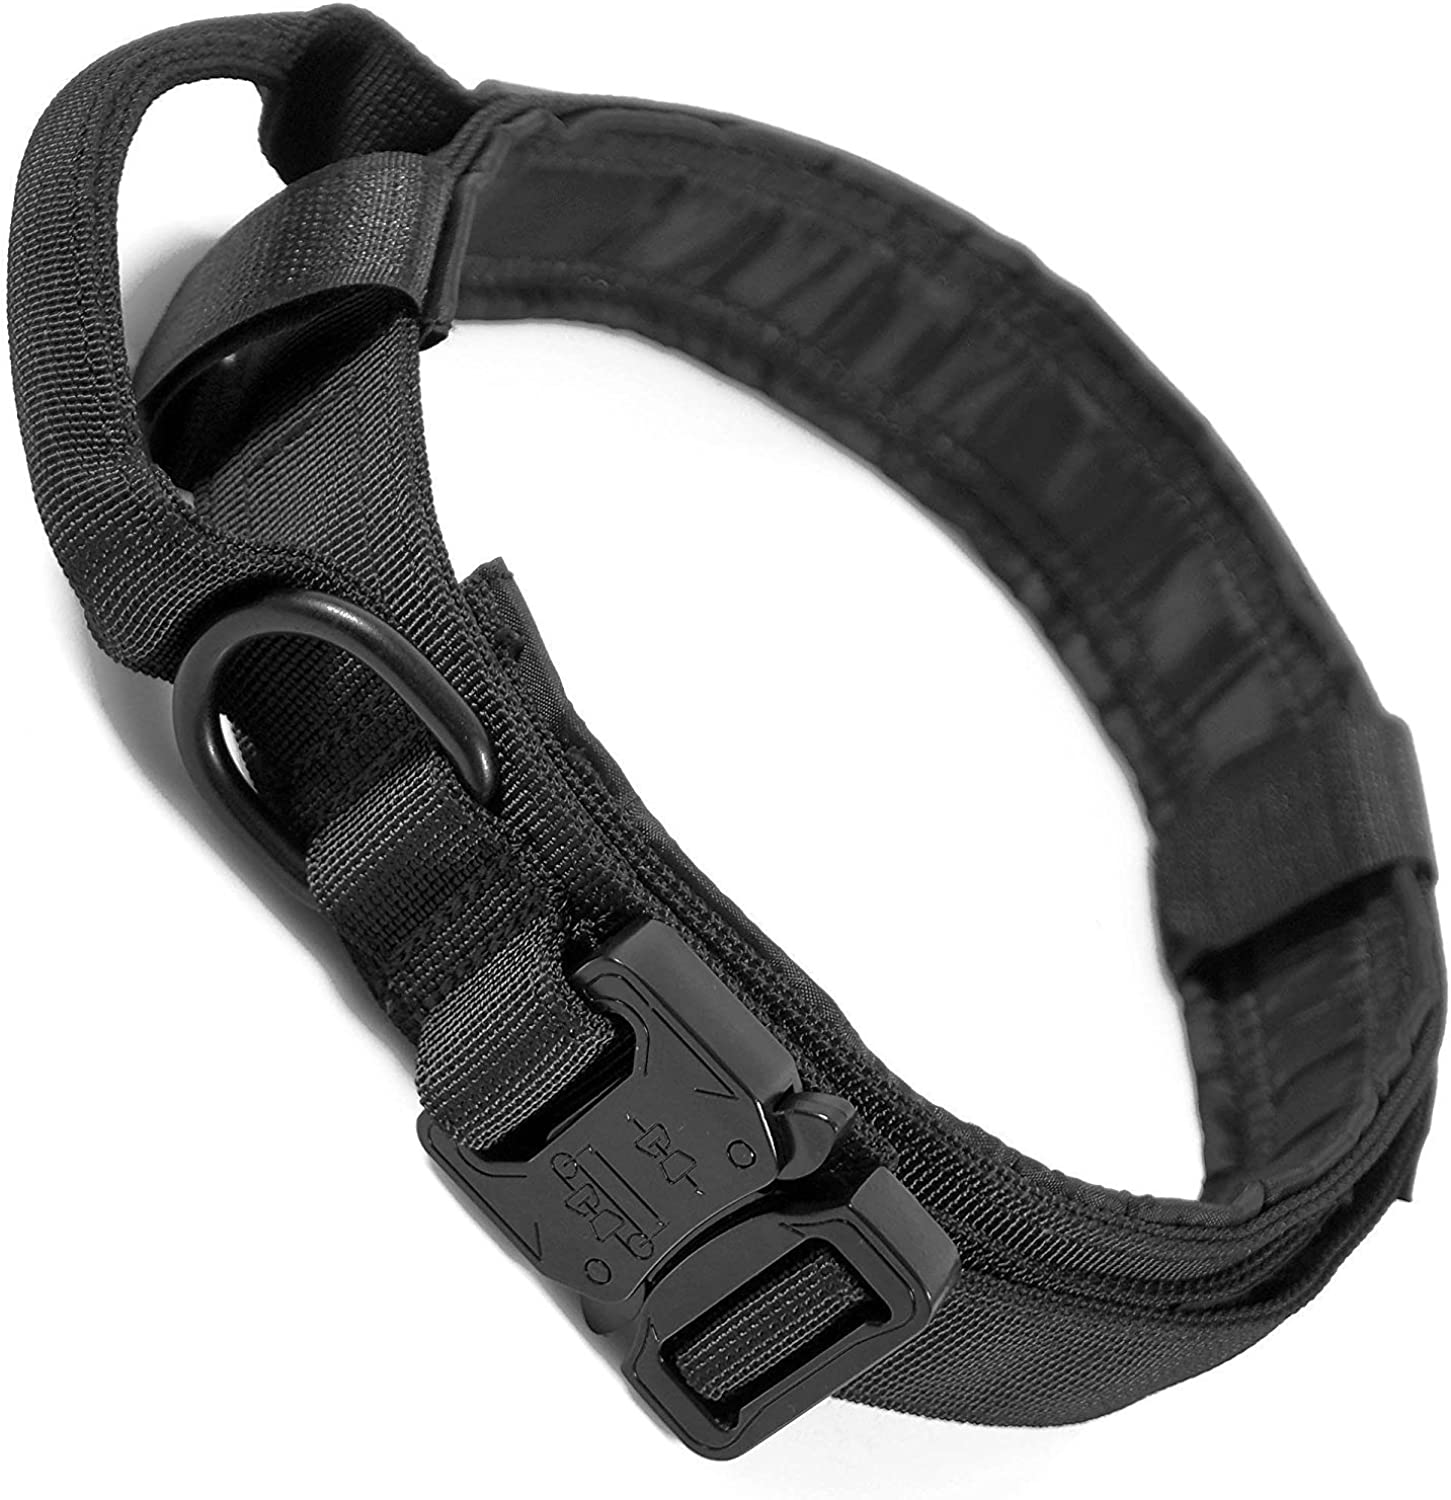 LIVABIT Heavy Duty 600D Nylon Tactical Dog Training Collar Handle Large Black